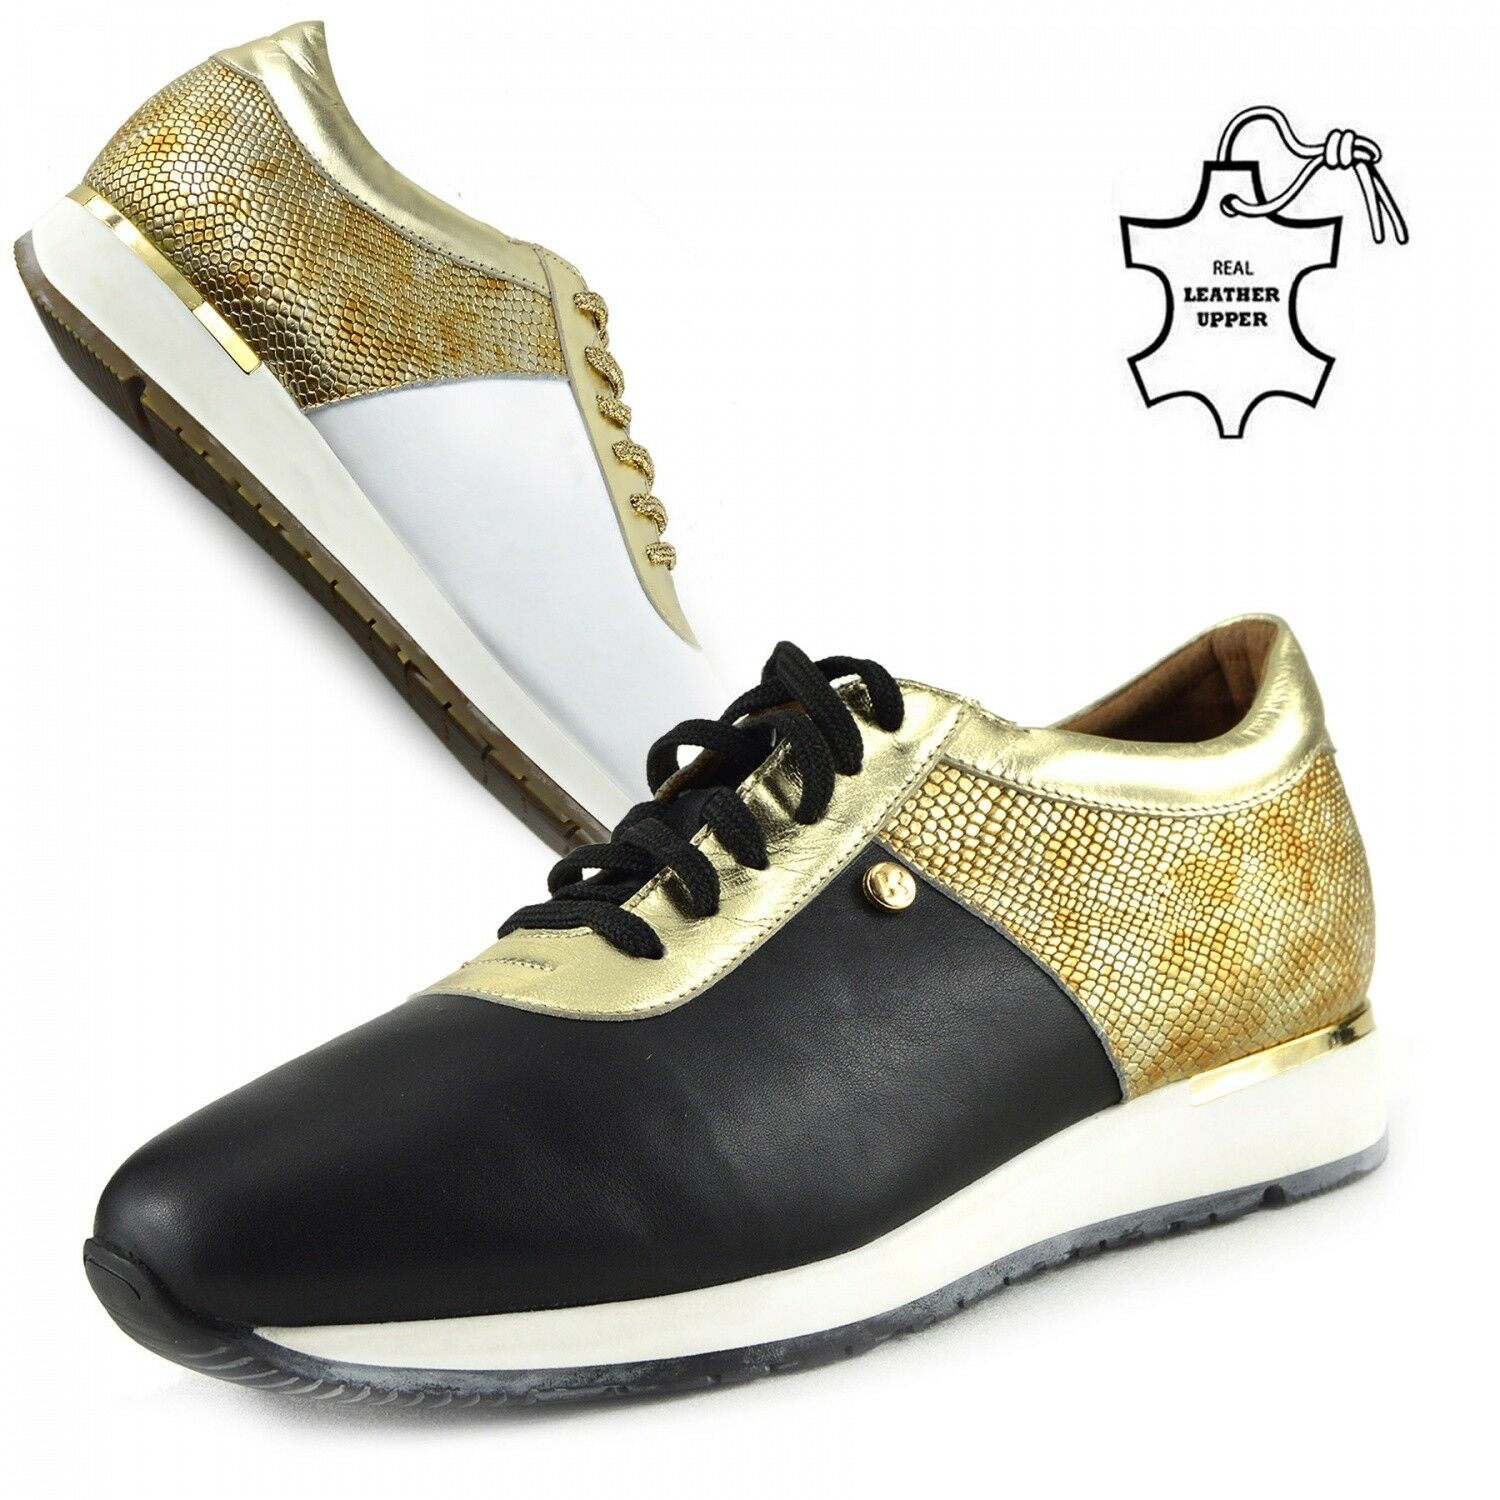 Casual Sneakers for Women's , Womens shoes walking Designer Trainers